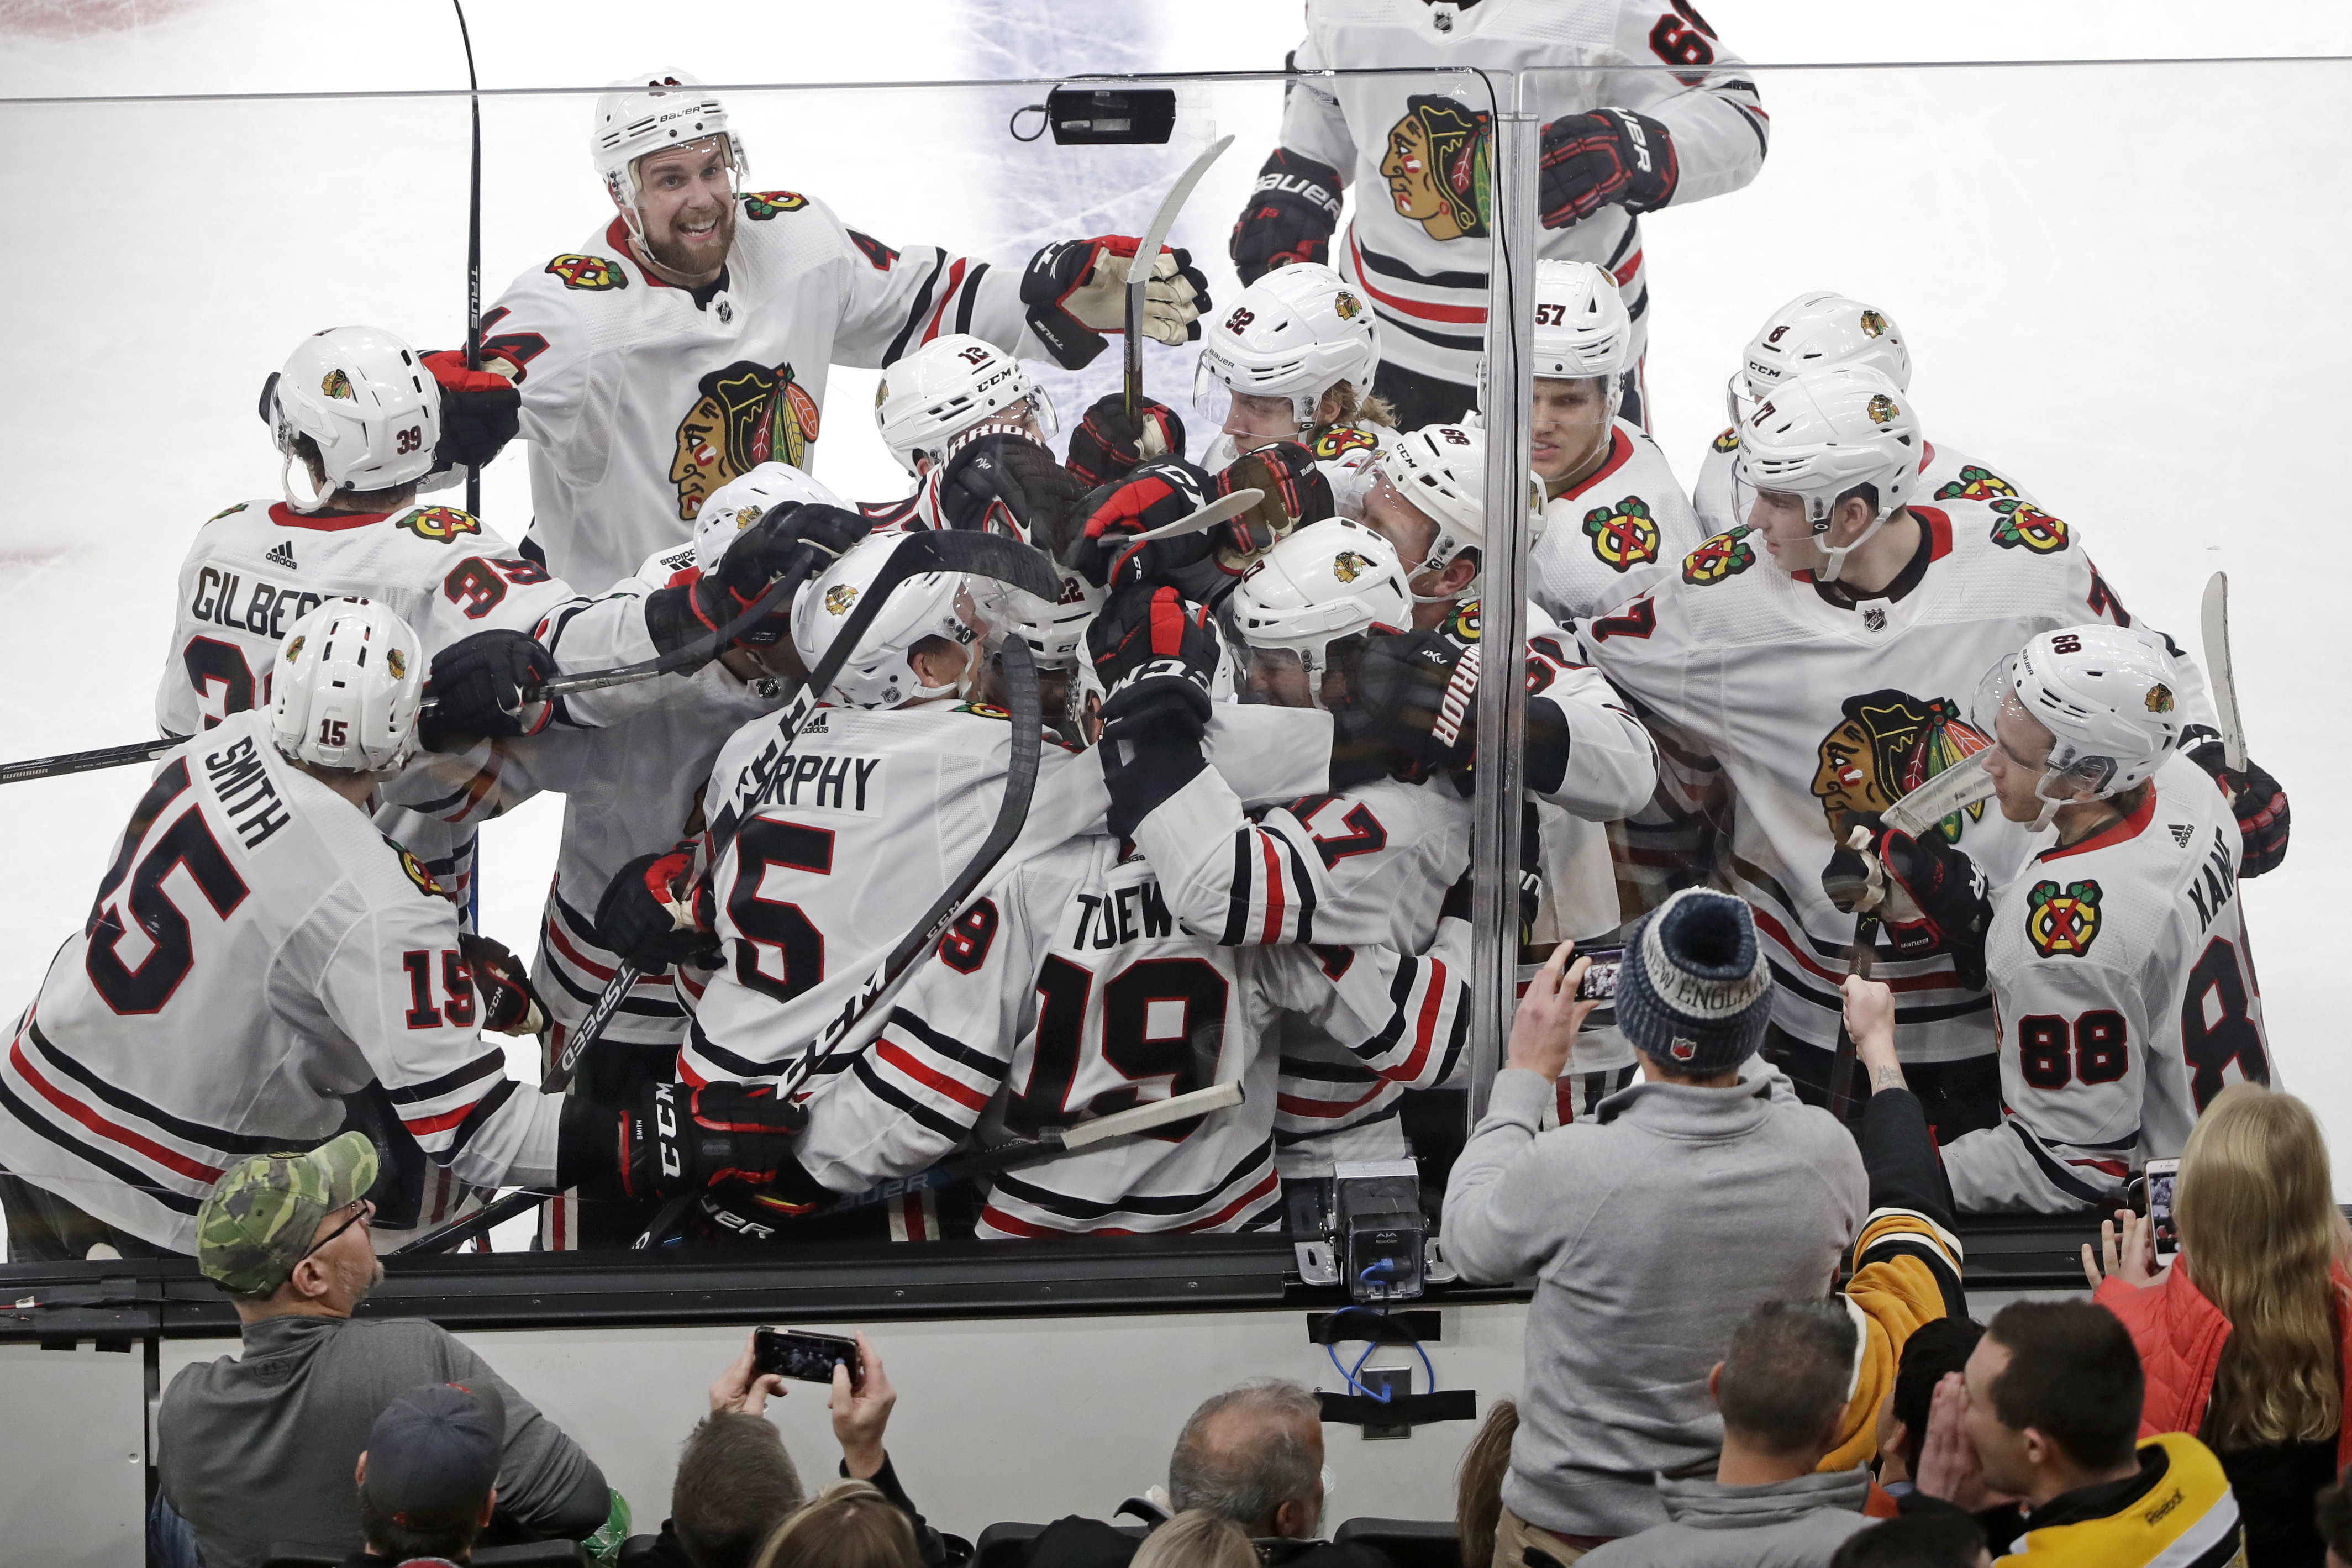 Jonathan Toews scored in overtime to earn a Blackhawks win in one of the NHL's toughest buildings.